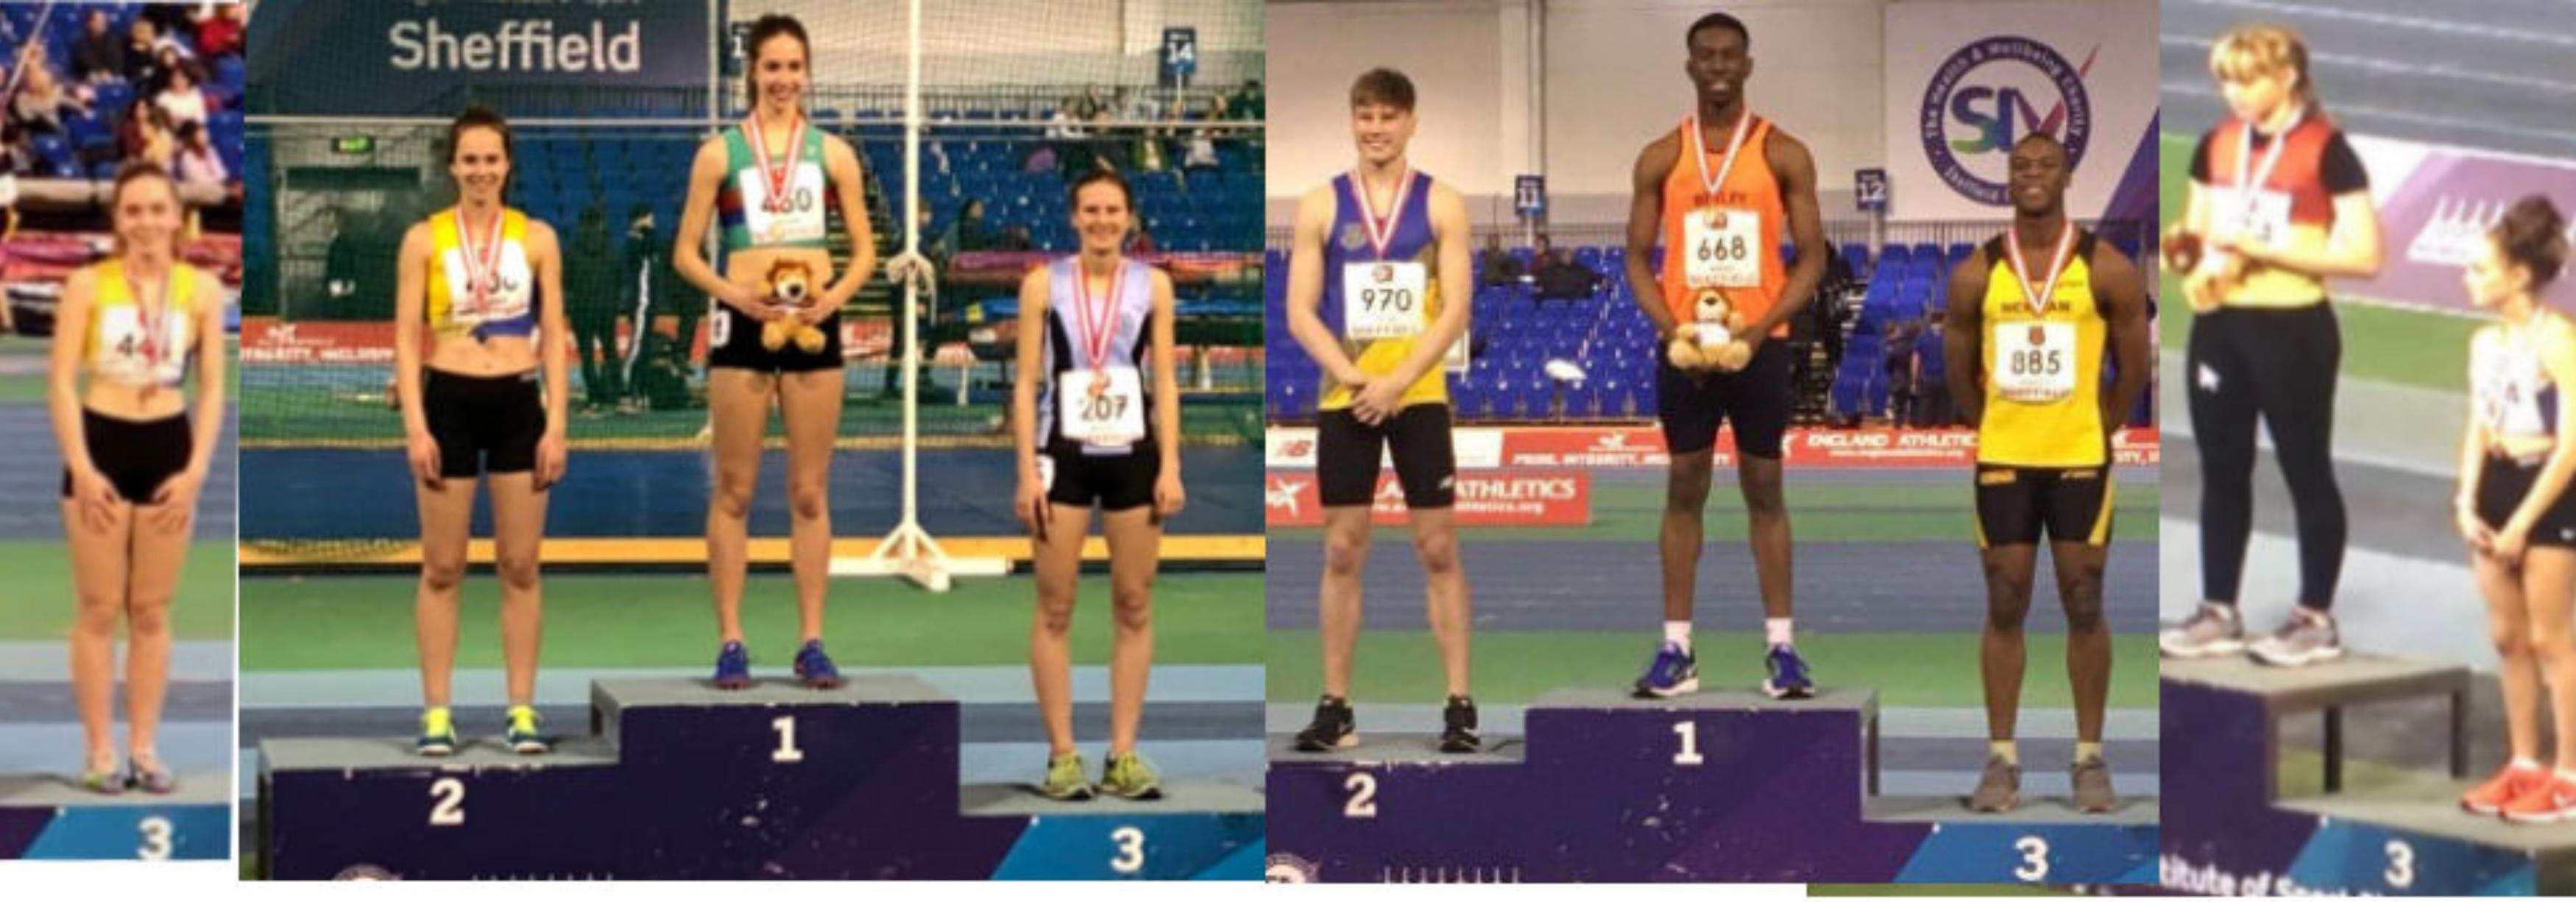 Medalists from 2018 English Indoor Athletics Championships (age Groups)